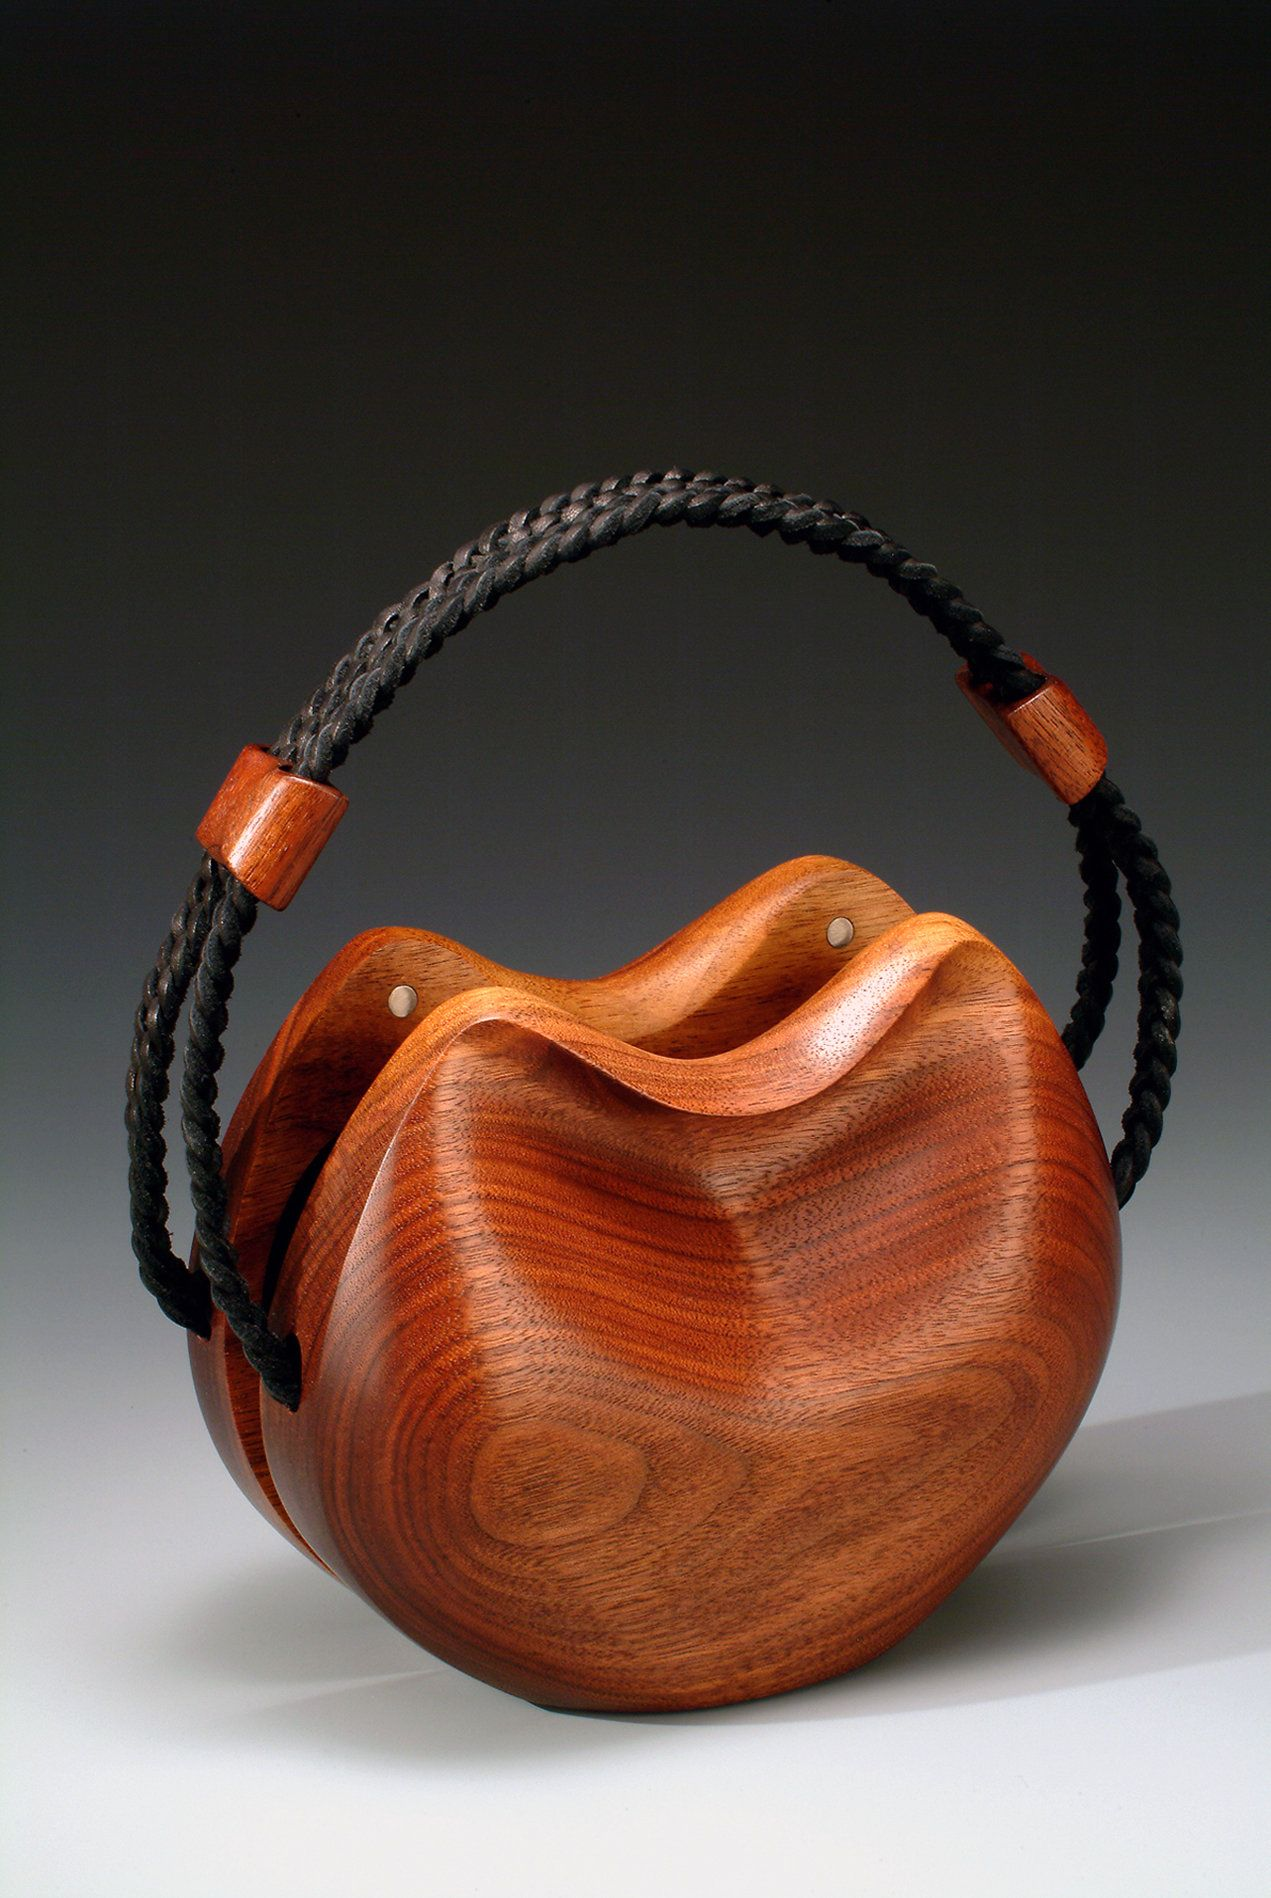 Courtney Purse By Kimberly Chalos Wood Purse In